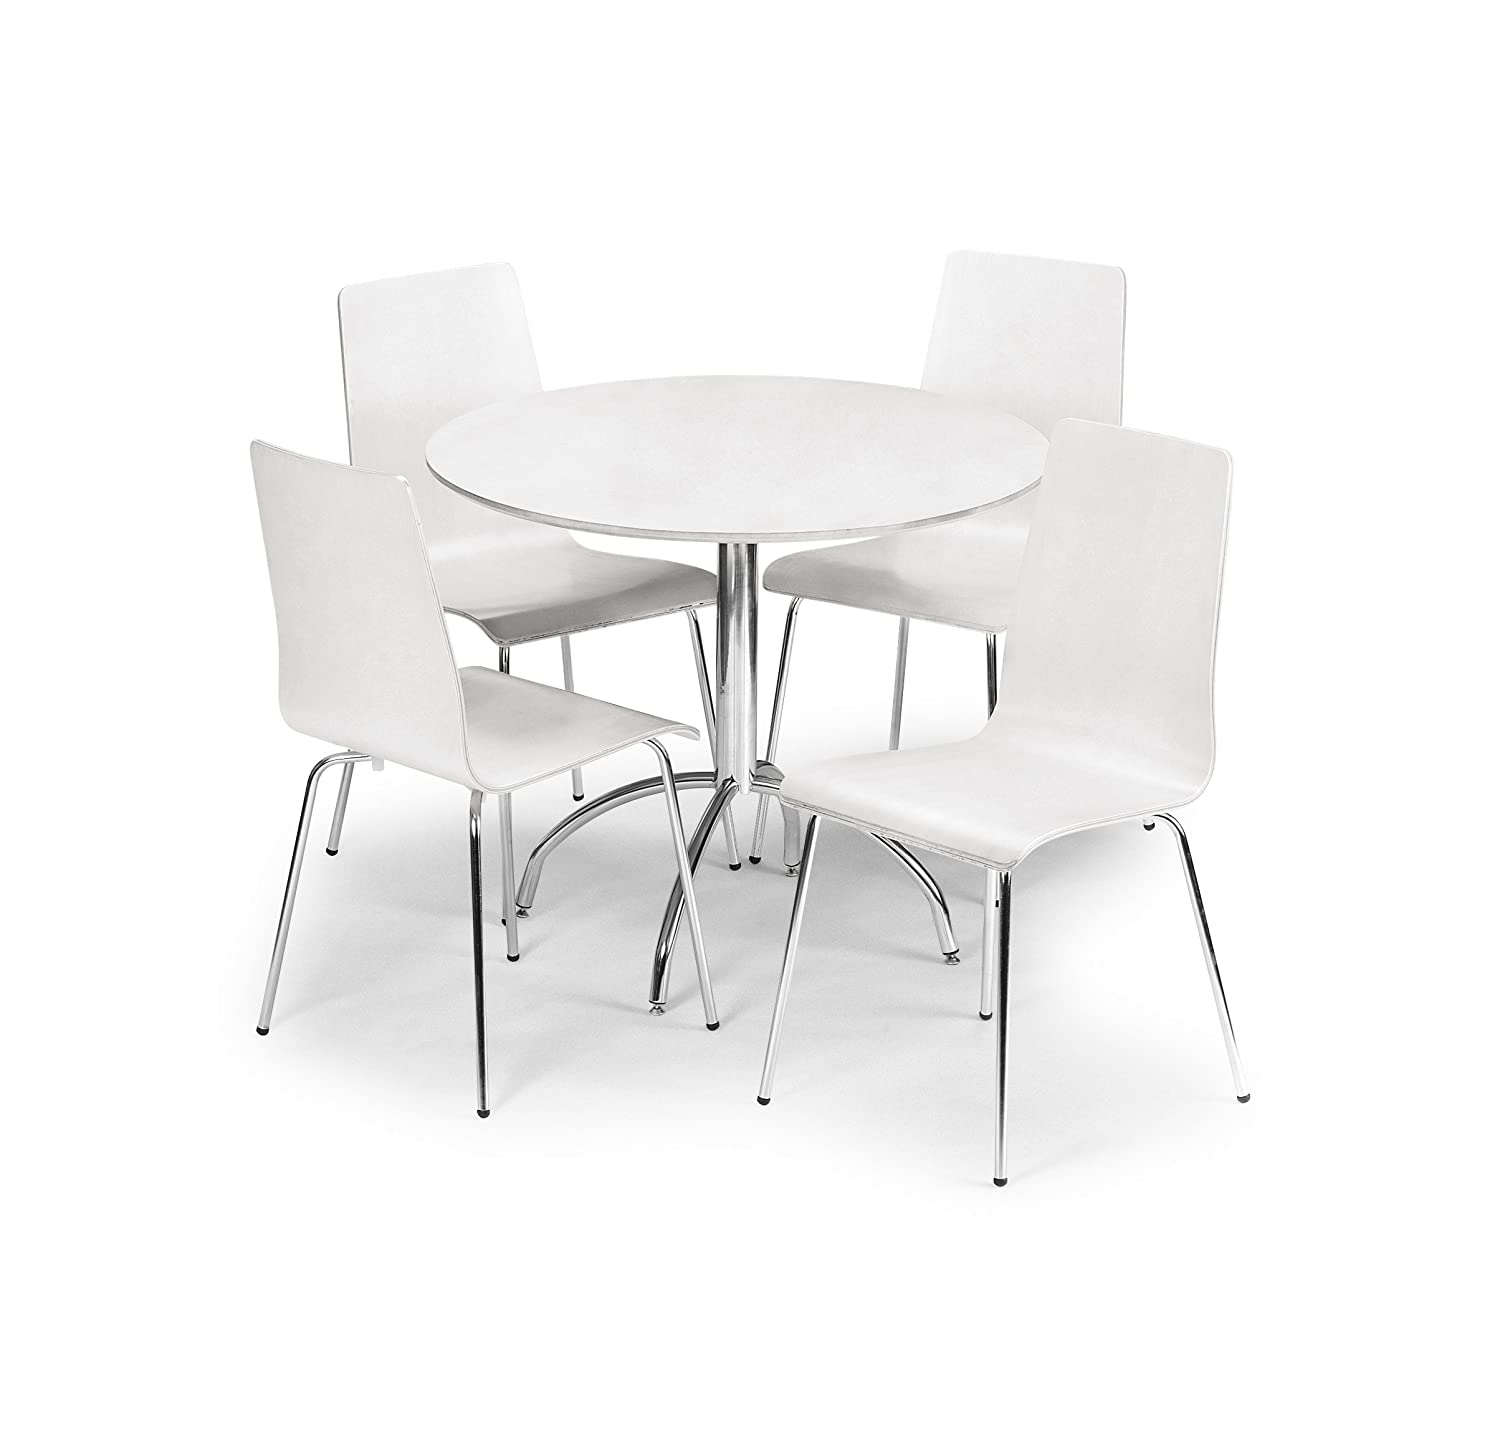 Julian Bowen Mandy Dining Table Set With 4 Chairs White Amazoncouk Kitchen Home